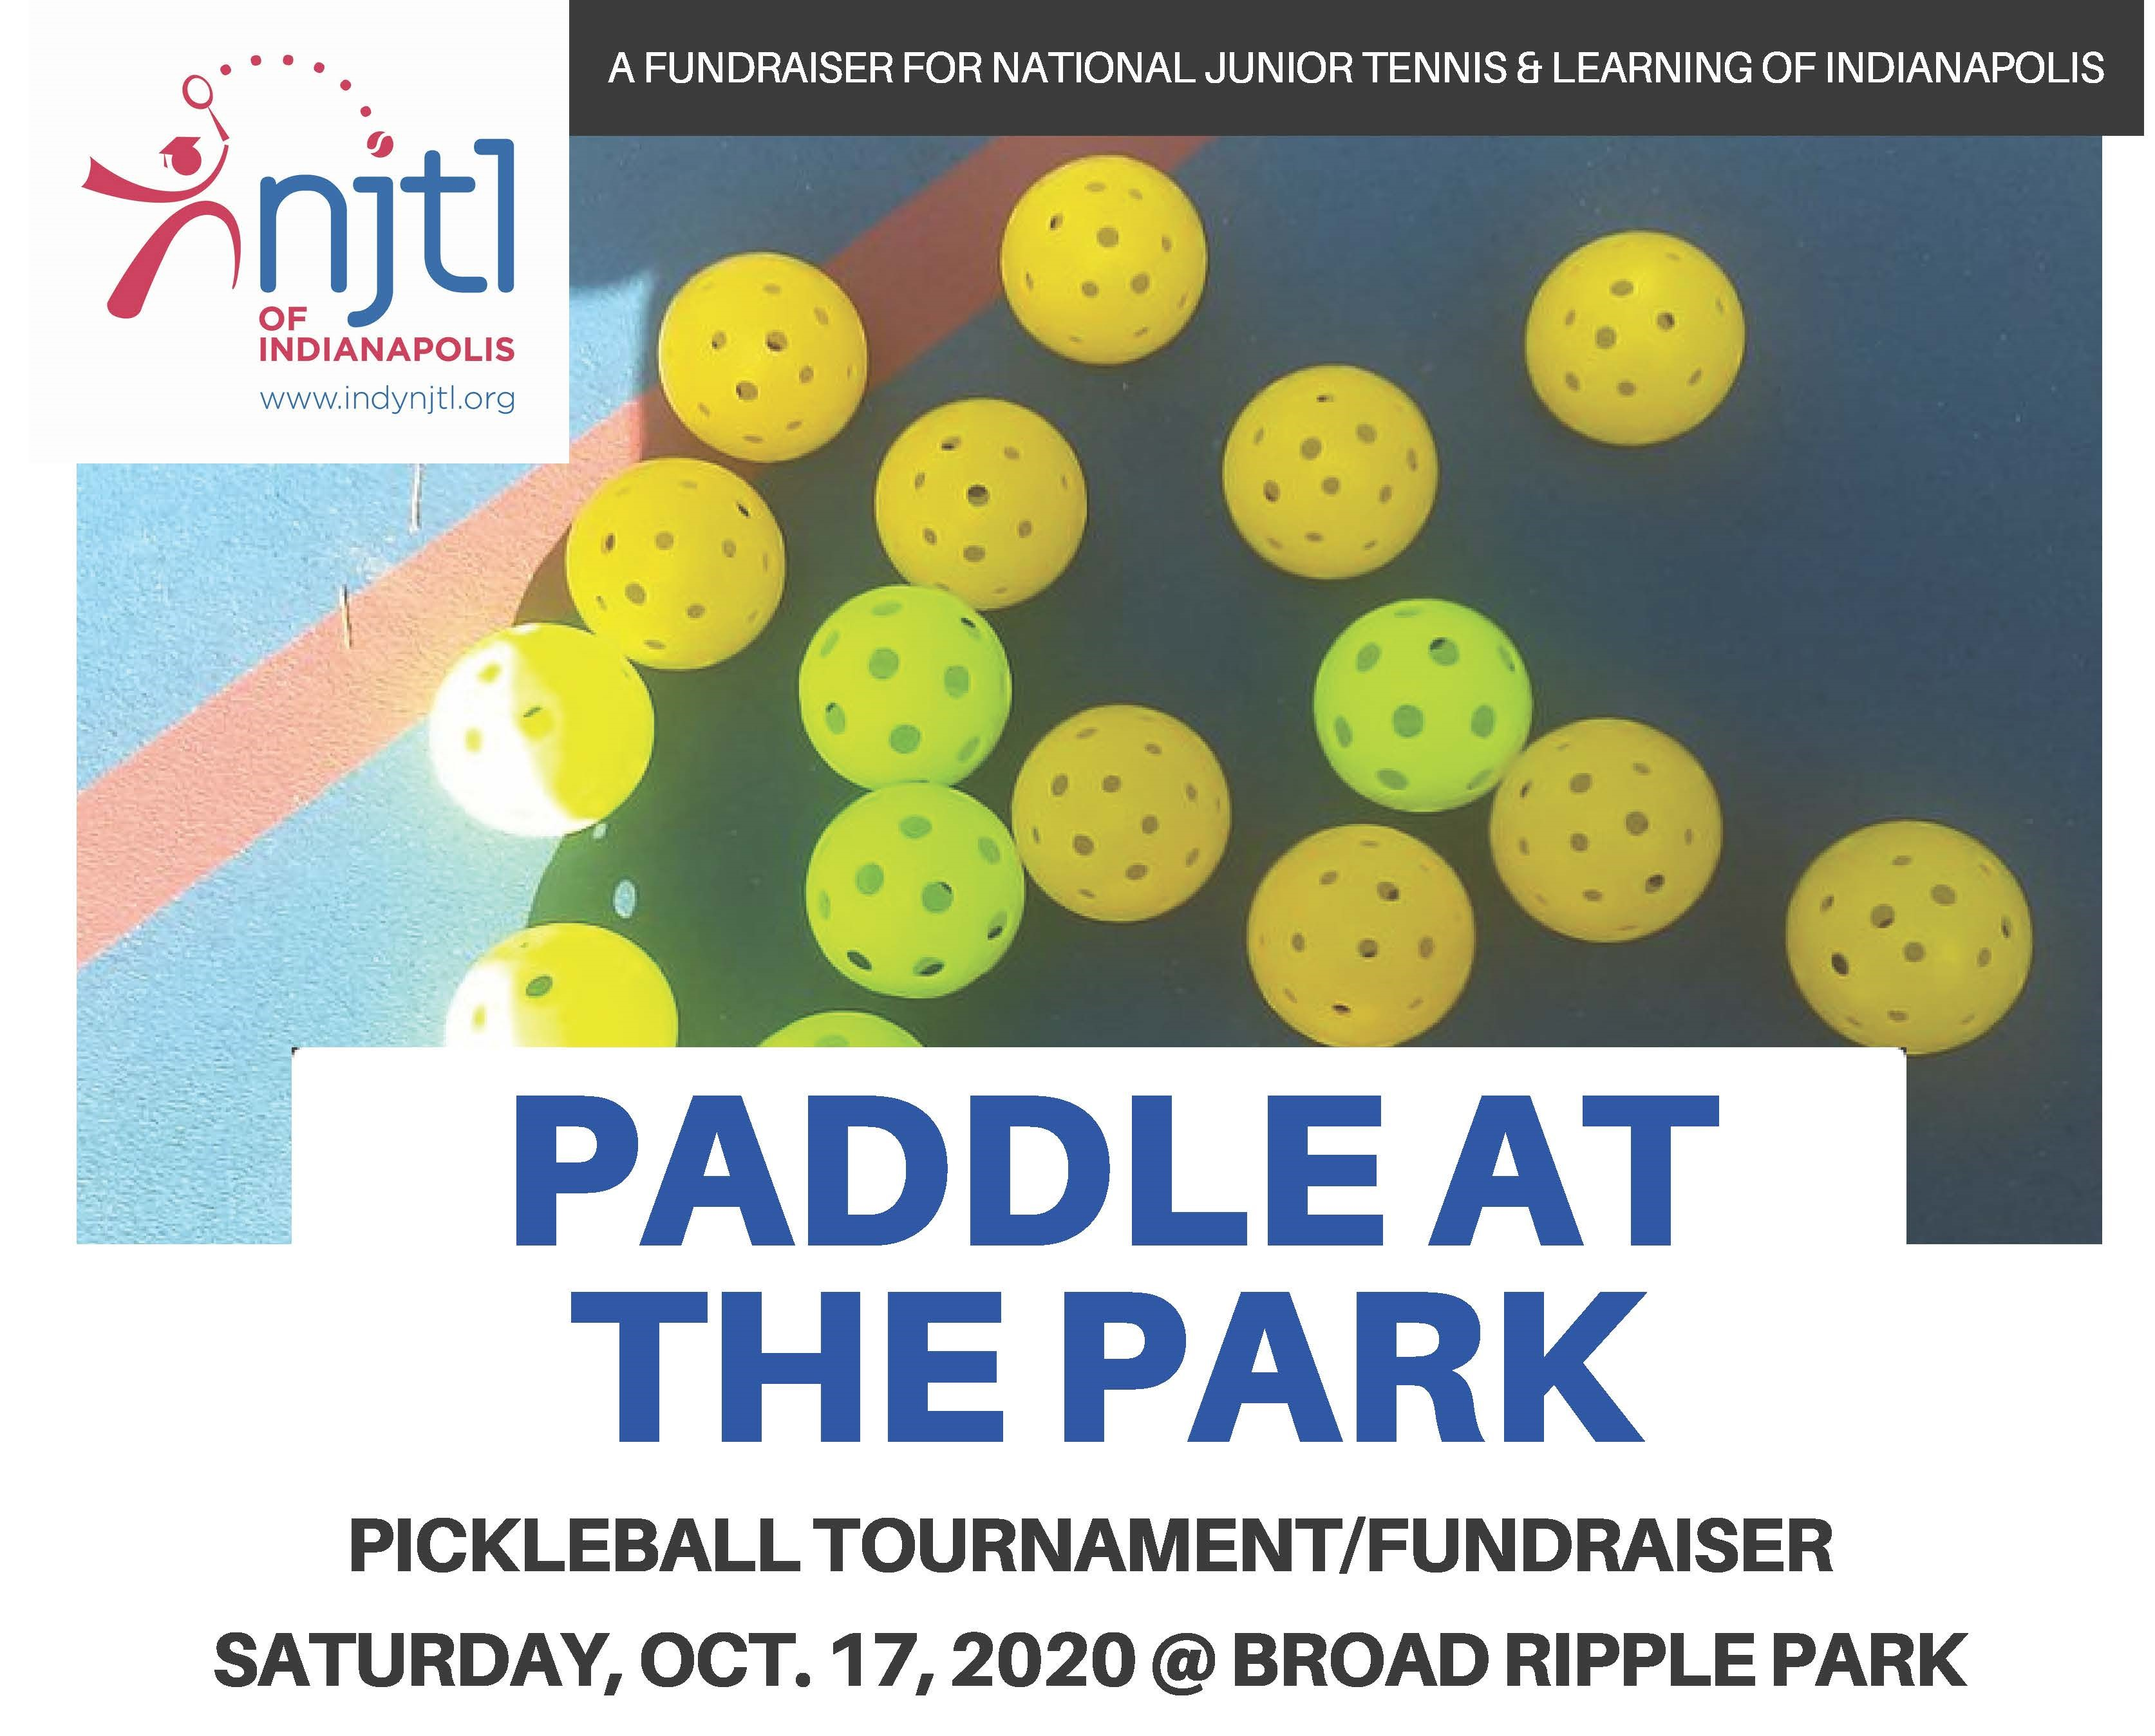 Paddle at the Park Tournament/Fundraiser